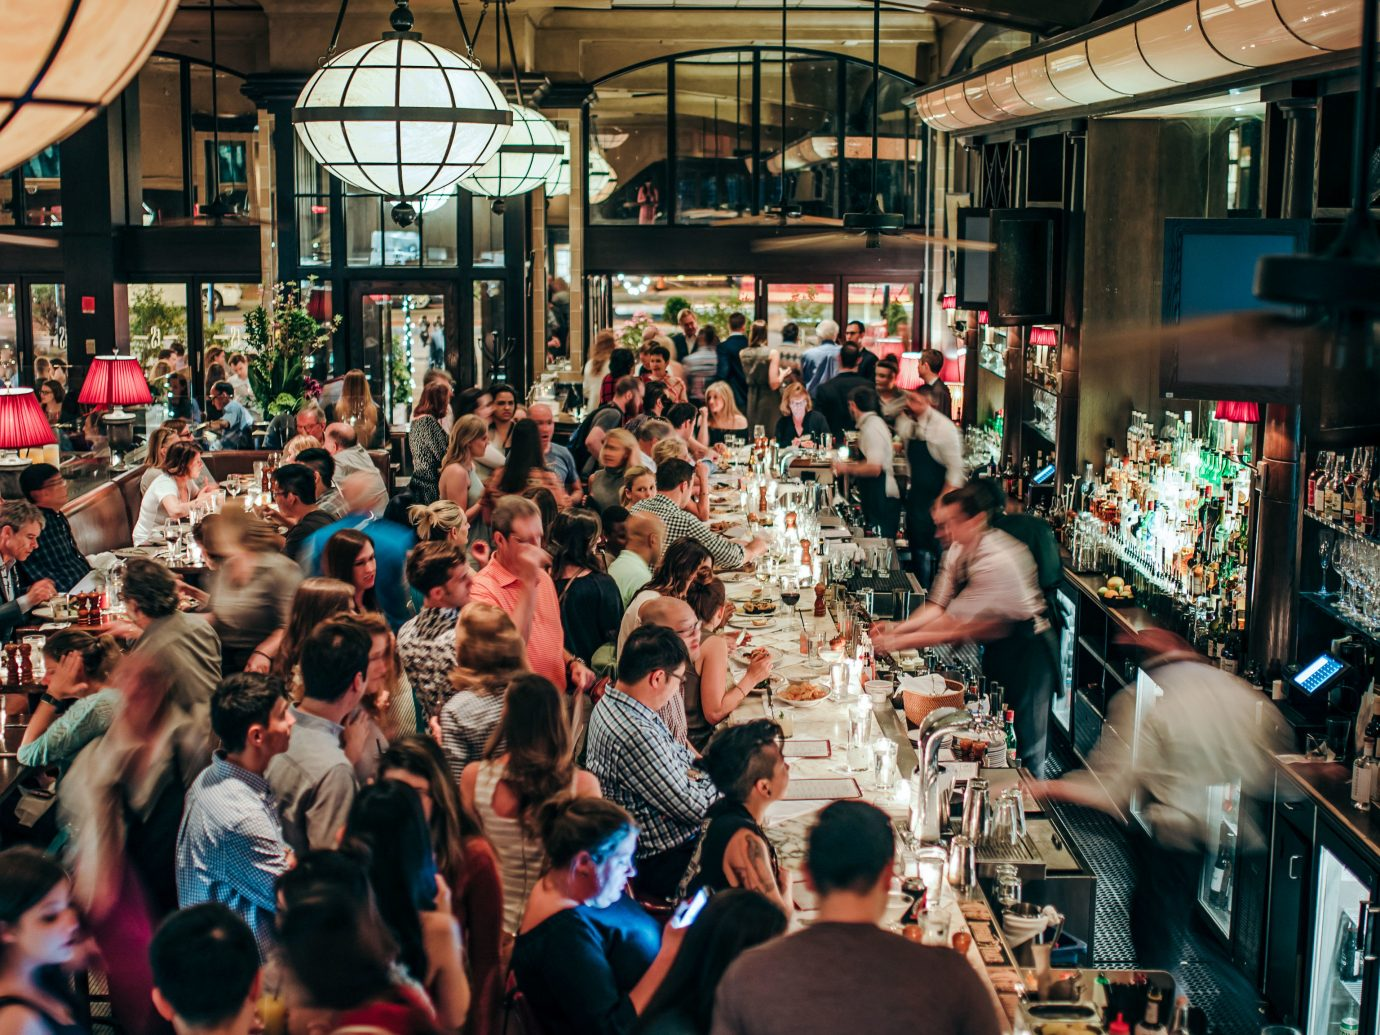 Boutique Hotels Fall Food + Drink Hotels Outdoors + Adventure Weekend Getaways building person crowd people public space scene City market marketplace group street fun recreation restaurant dining room